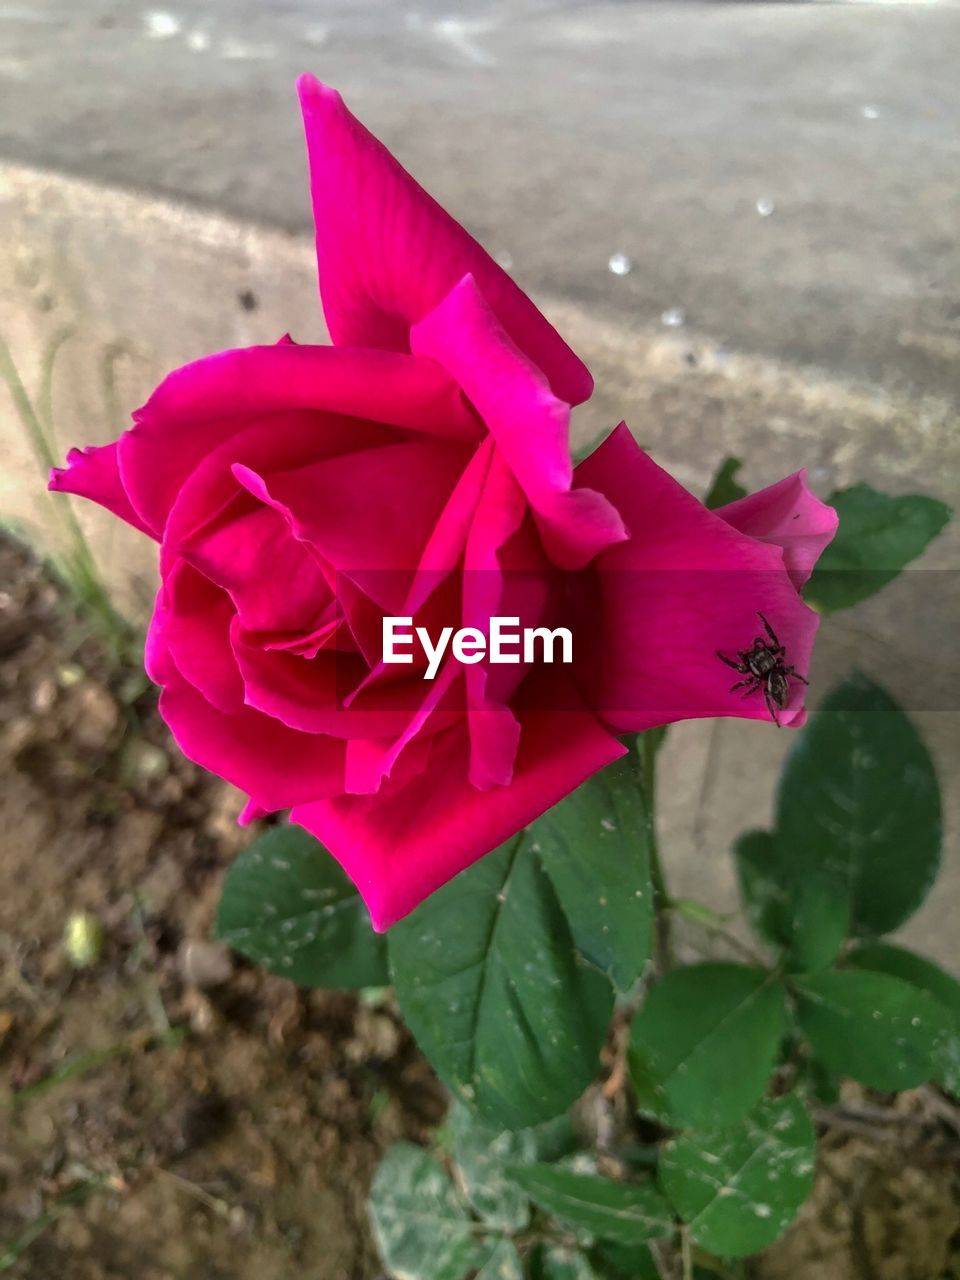 plant, pink color, beauty in nature, close-up, petal, flowering plant, flower, freshness, nature, flower head, inflorescence, vulnerability, fragility, no people, growth, focus on foreground, leaf, rose, day, plant part, outdoors, purple